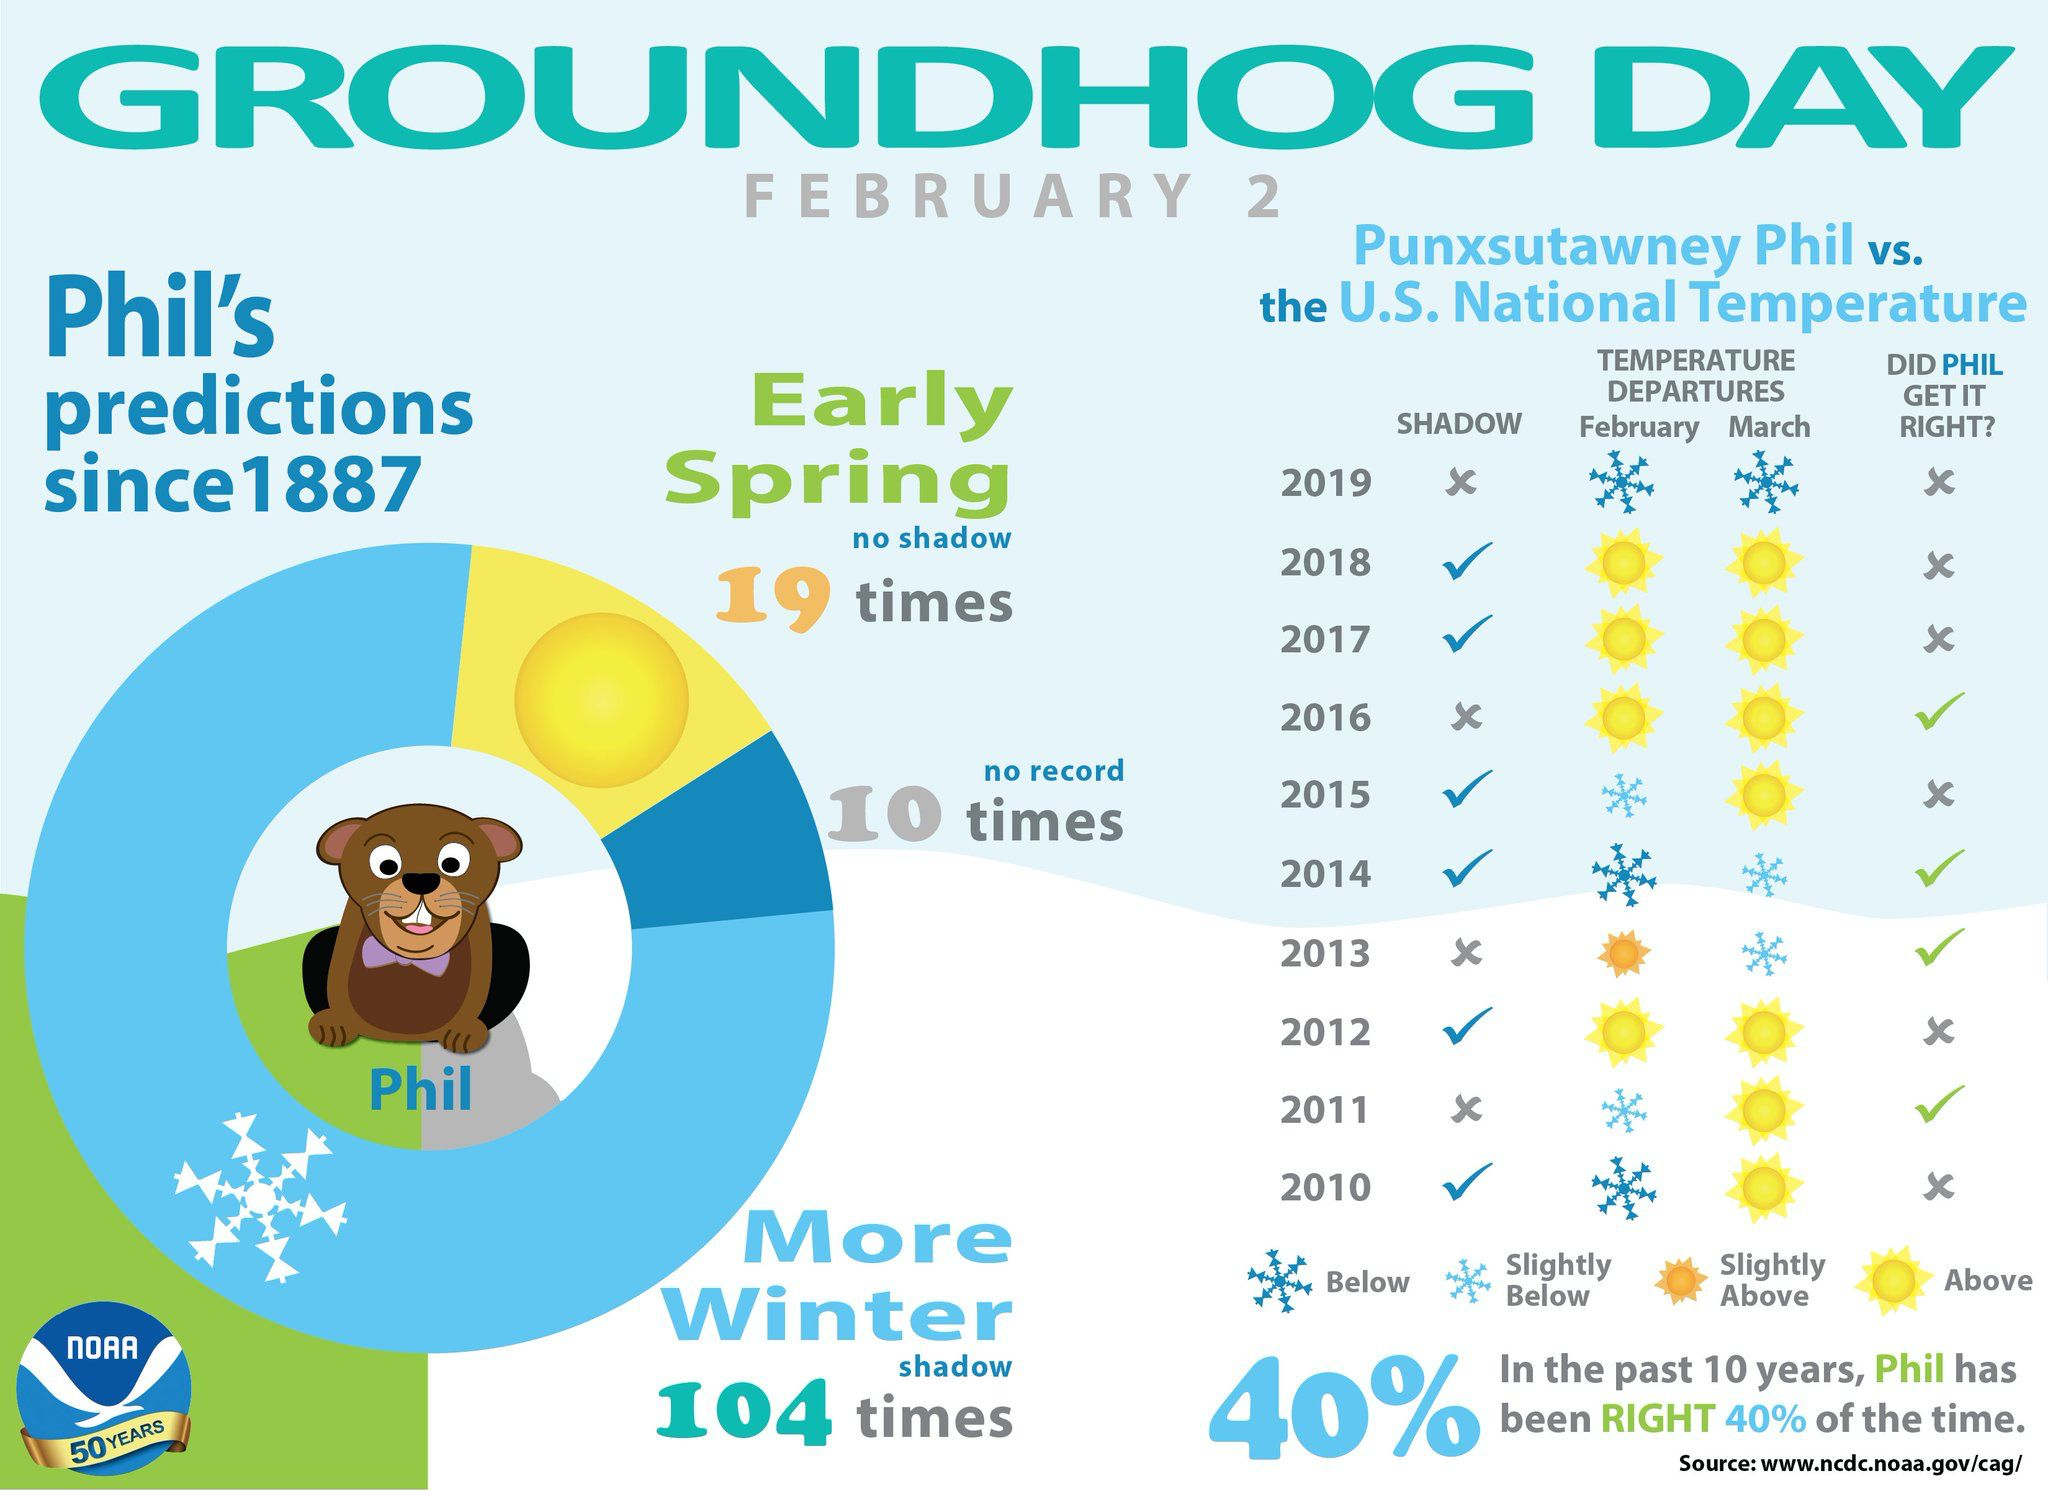 Pin by Mary Blake on Groundhog Day!! in 2020 Groundhog